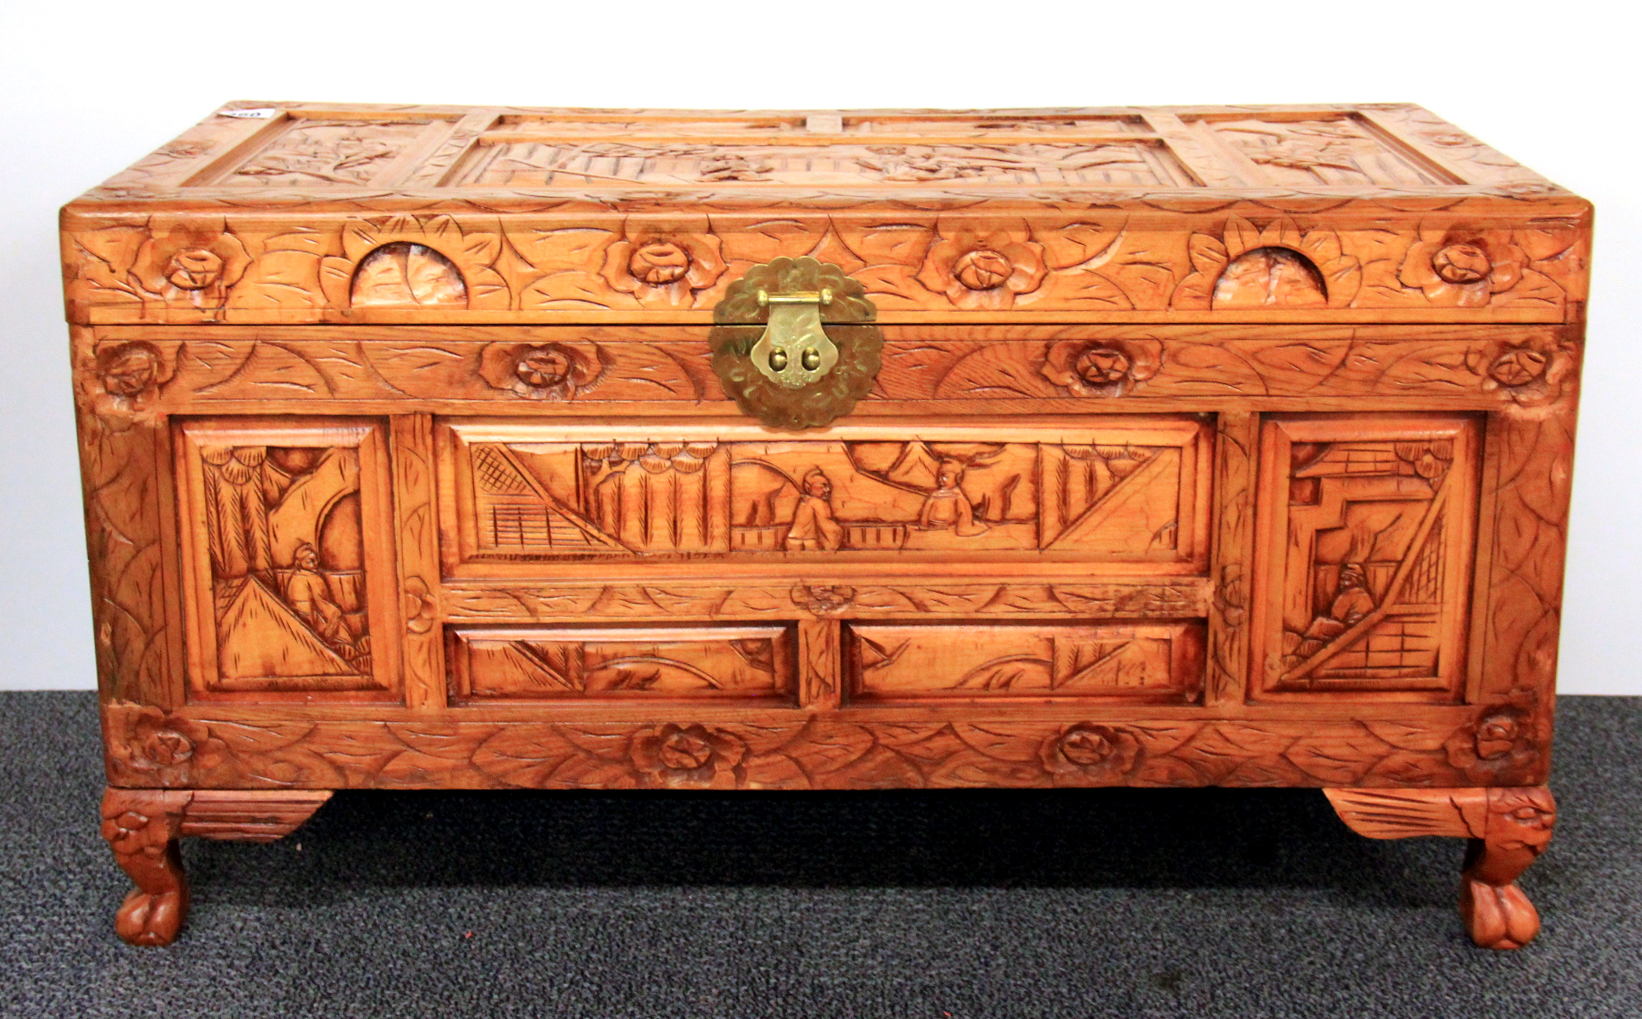 Wood Blanket Box A Medium Sized Chinese Carved Wooden Blanket Chest 87 X 41 X 47cm